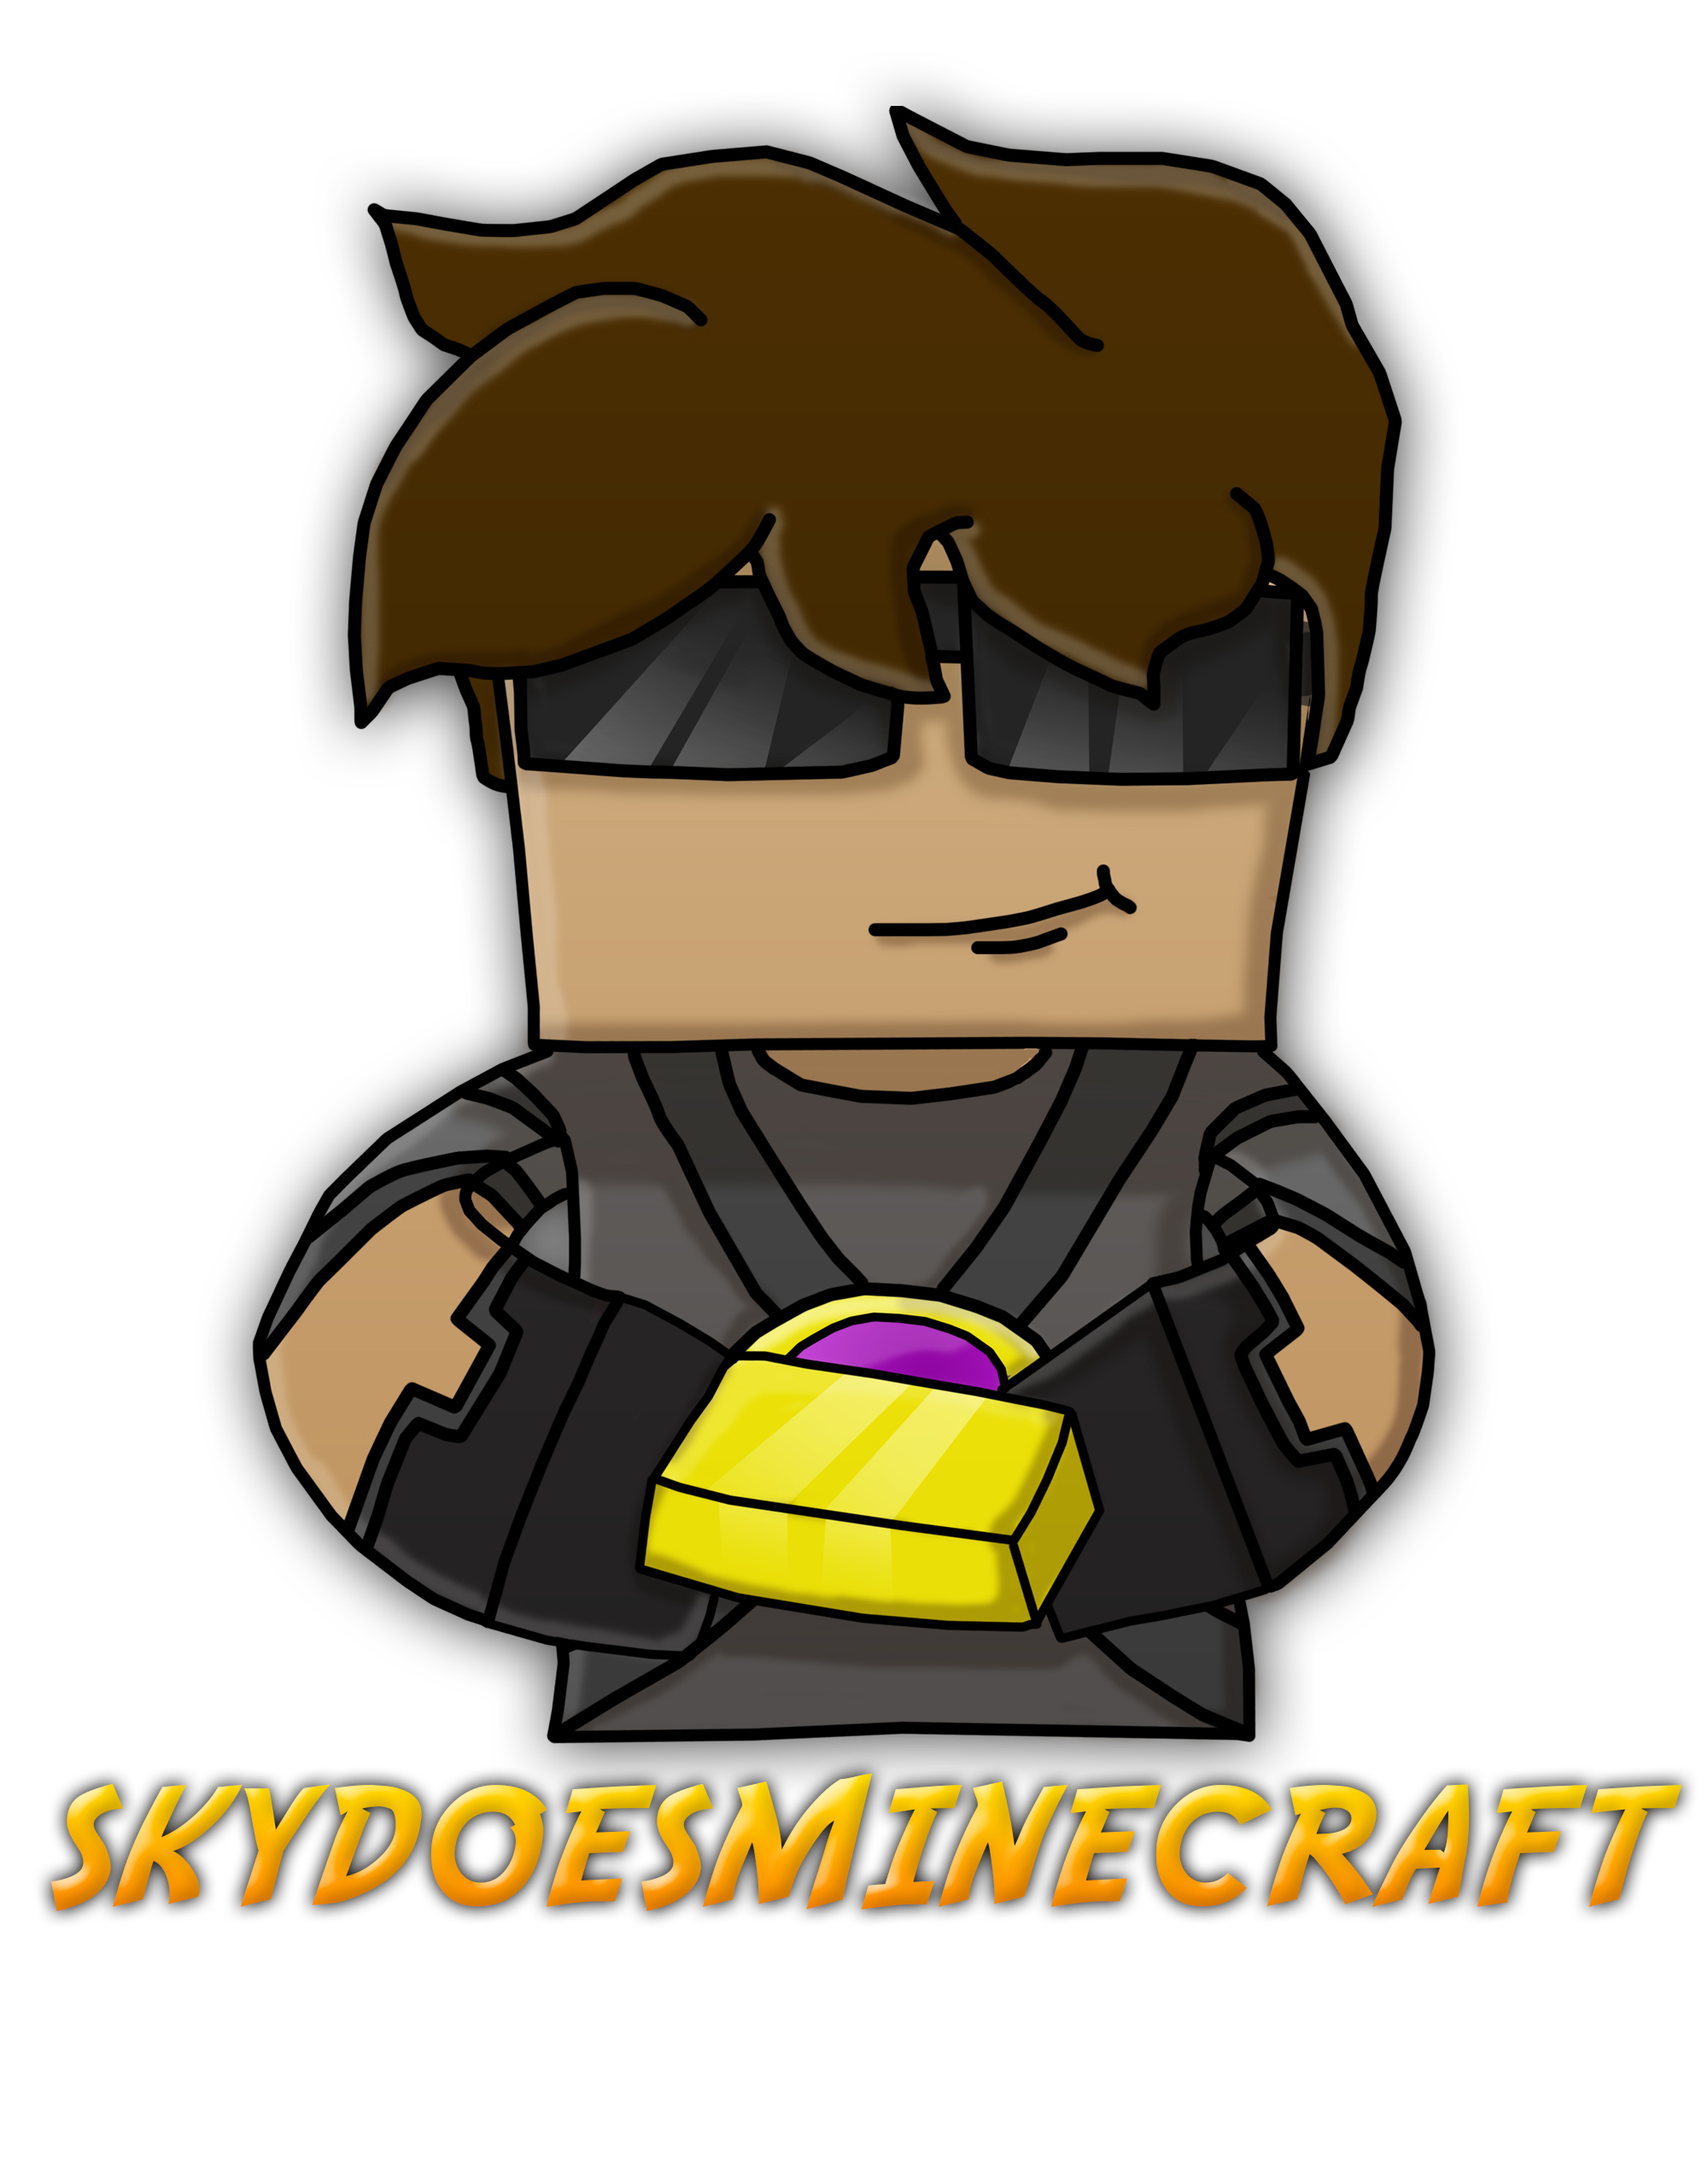 Skydoesminecraft!! by Gameaddict1234 on DeviantArt